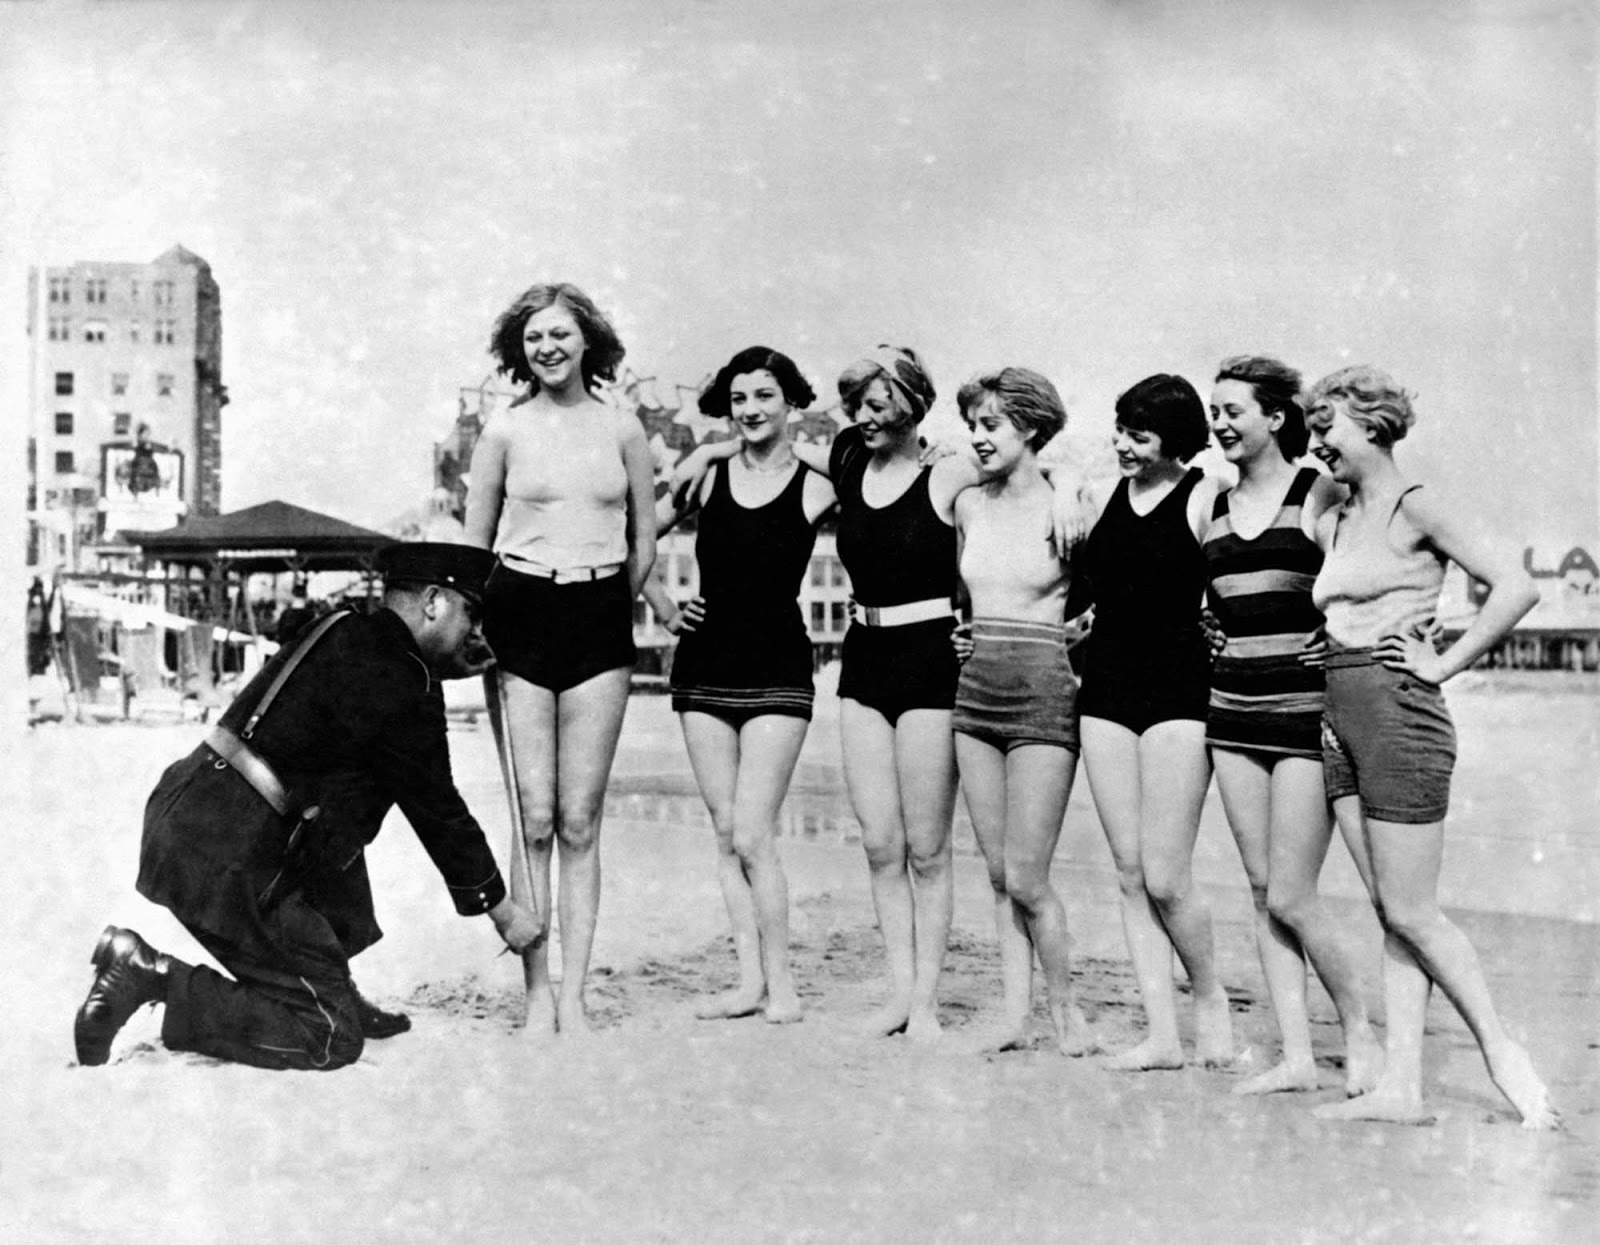 A policeman measuring the swimming costumes of women on the beach in the 1920s.